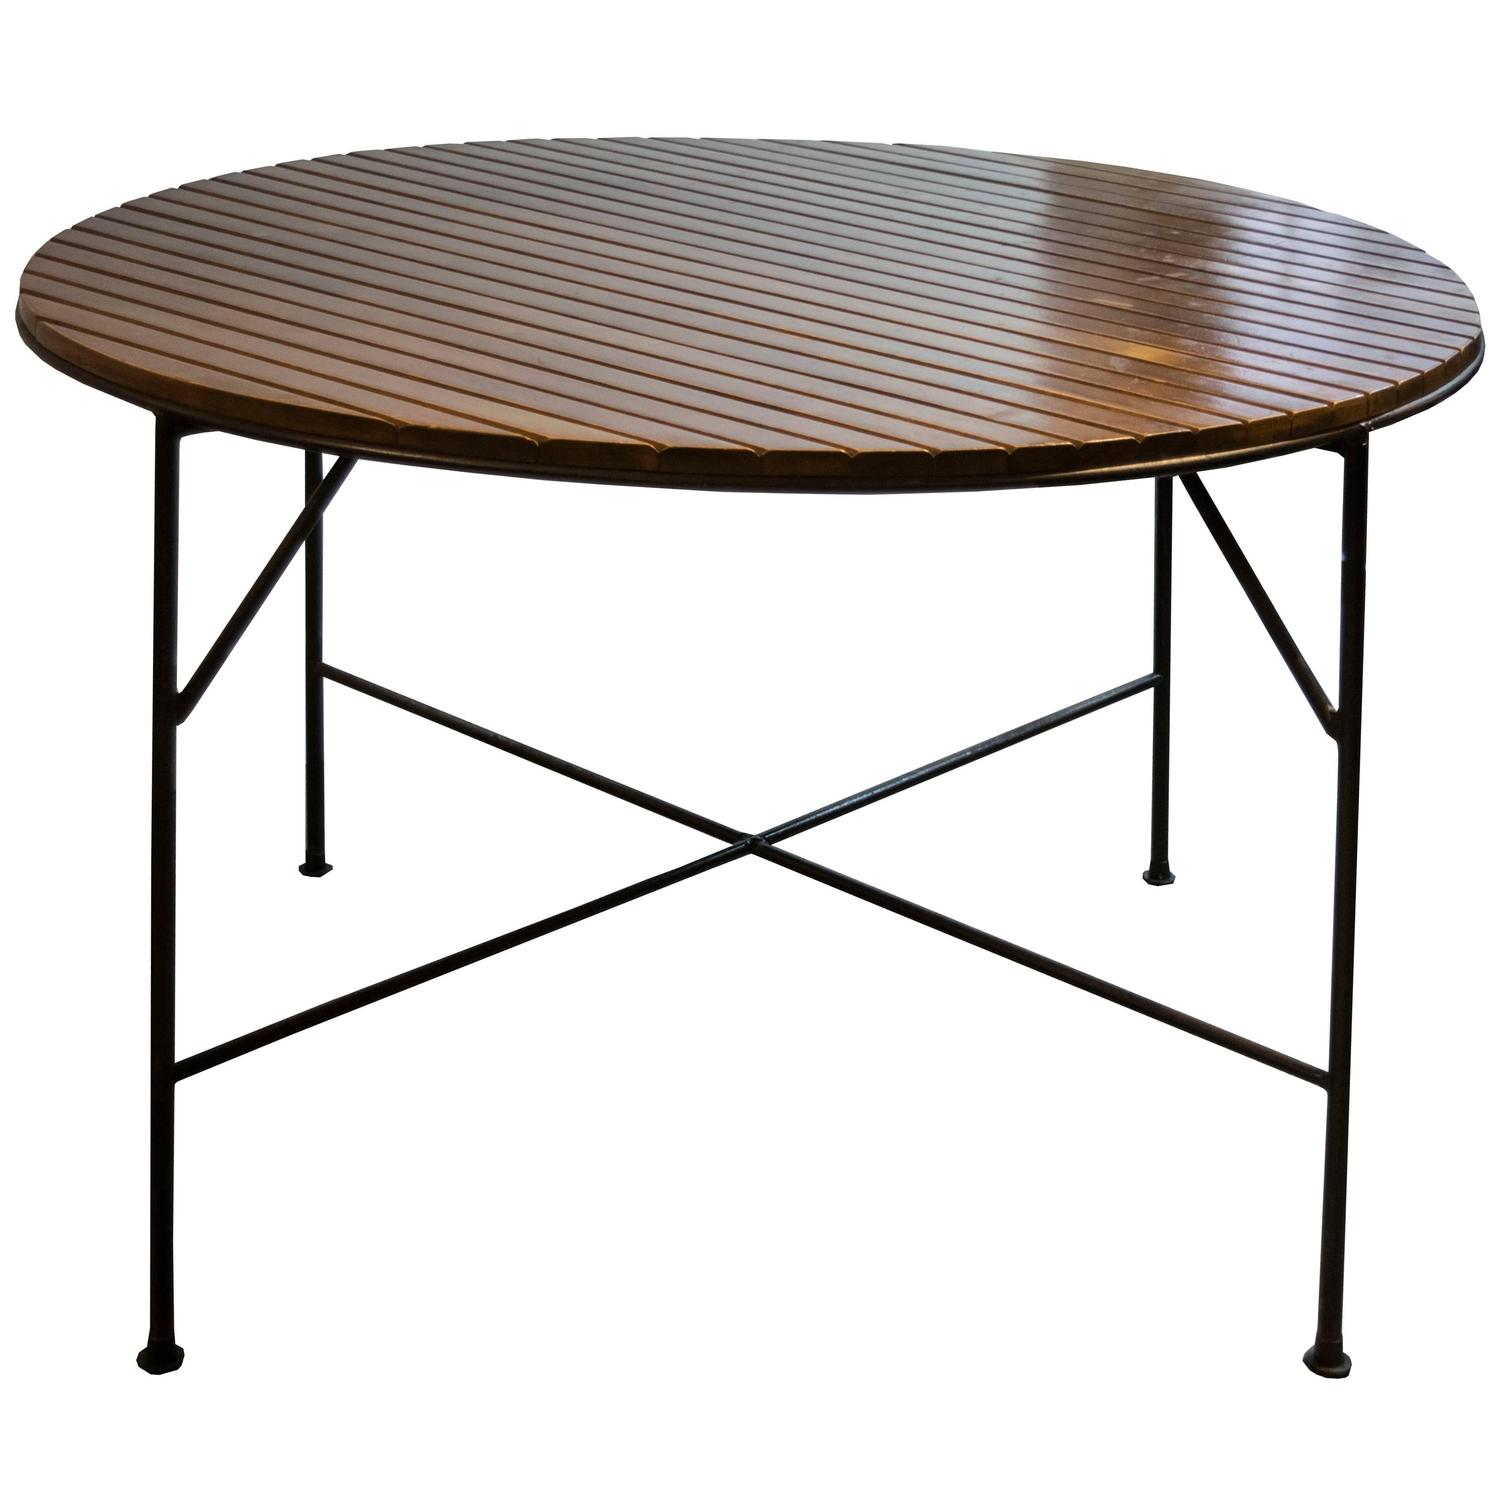 arthur umanoff hand forged wrought iron and wood round table at 1stdibs. Black Bedroom Furniture Sets. Home Design Ideas